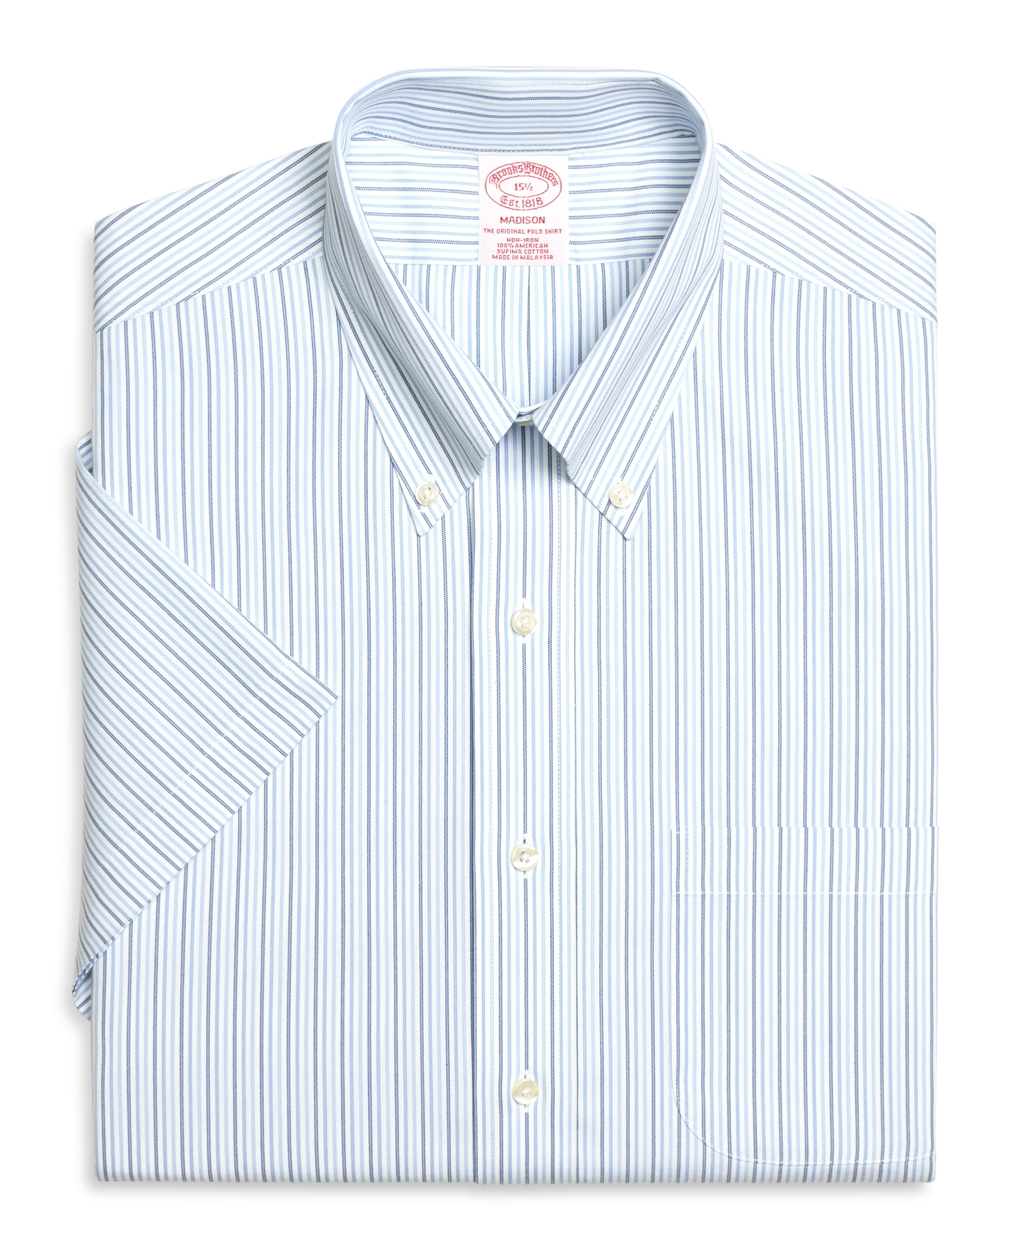 Brooks brothers non iron madison fit short sleeve tonal for Non wrinkle dress shirts